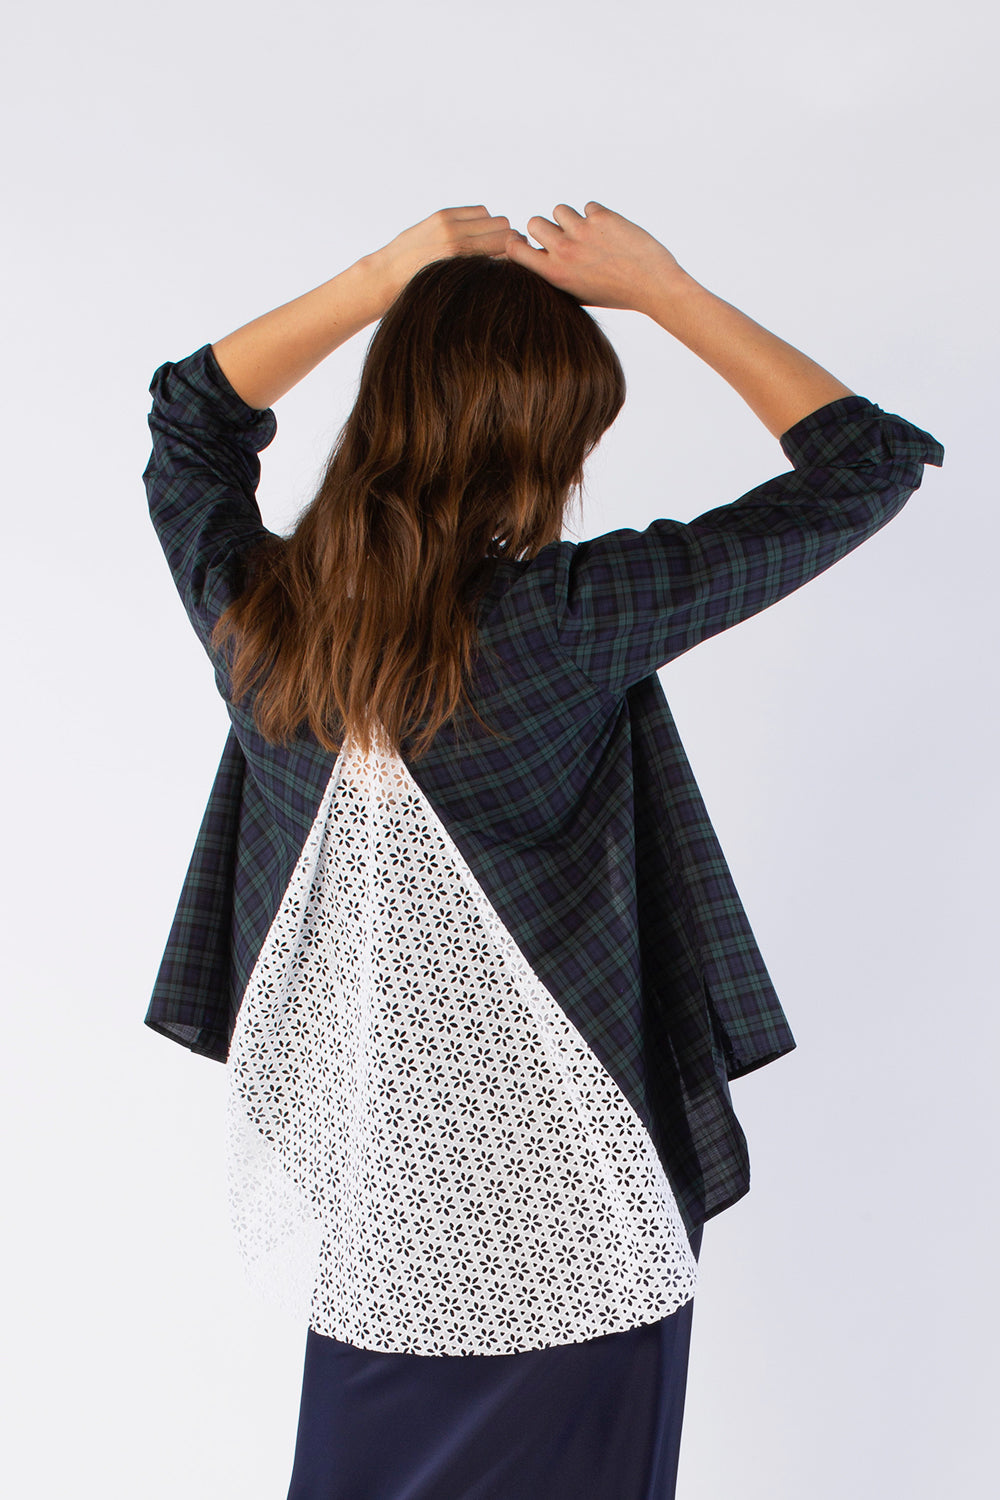 The Open Back Shirt - Navy & Green Plaid Cotton - SERENA BUTE